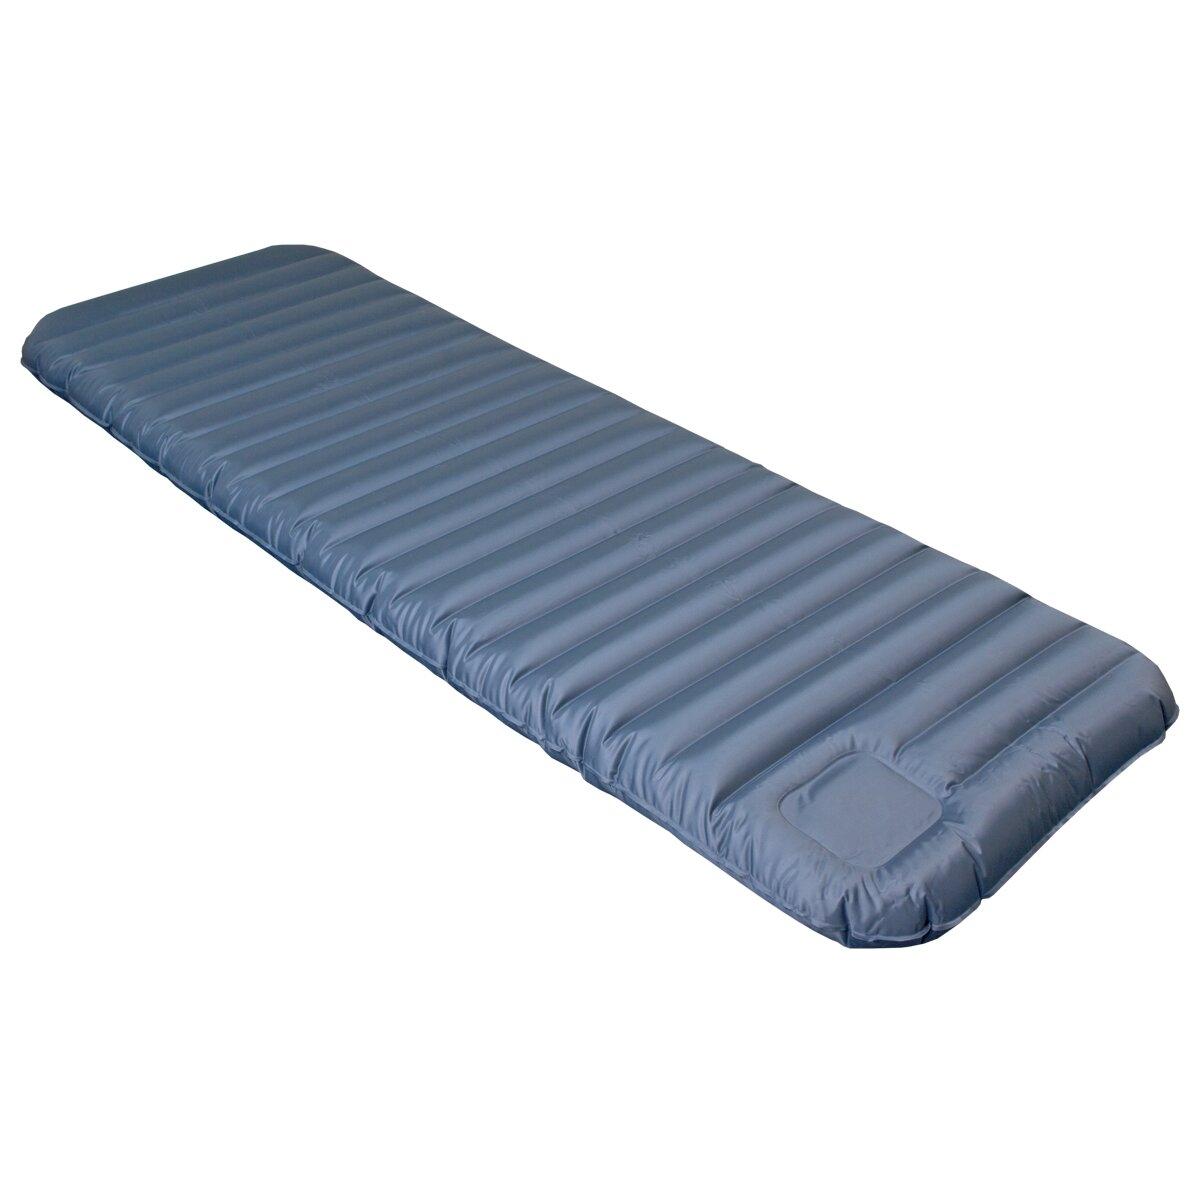 "Camping Mattress: Altimair Frontier Camping 5"" Air Mattress With Foot Pump"